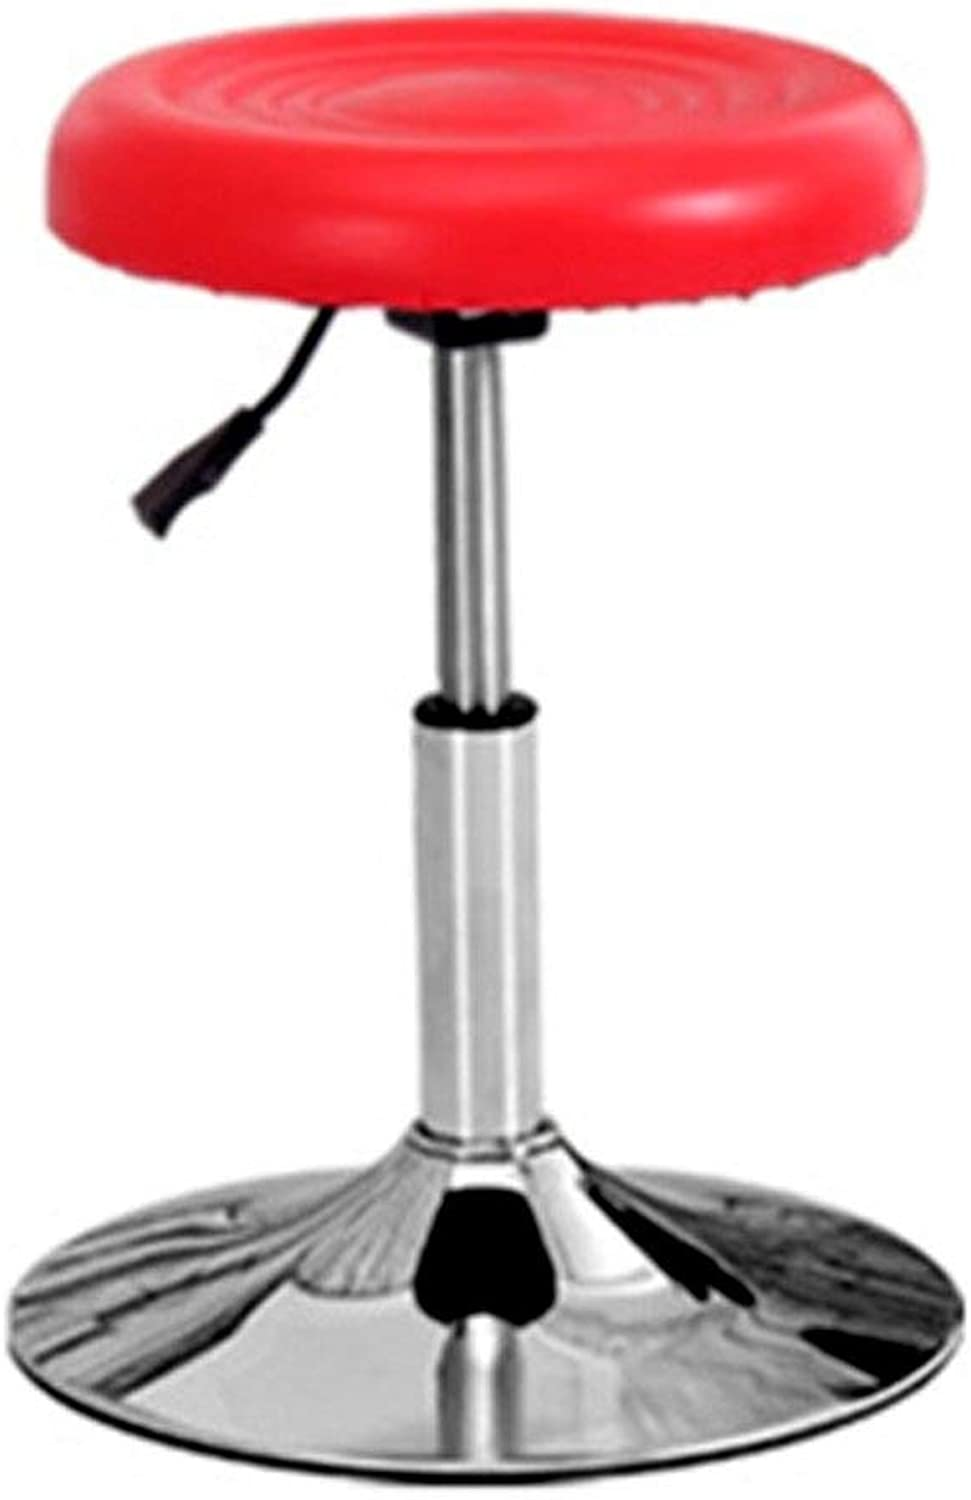 Metal Fashion Bar Stool Swivel Chair Beauty Stool Barber Chair Front Chair HENGXIAO (color   Red)